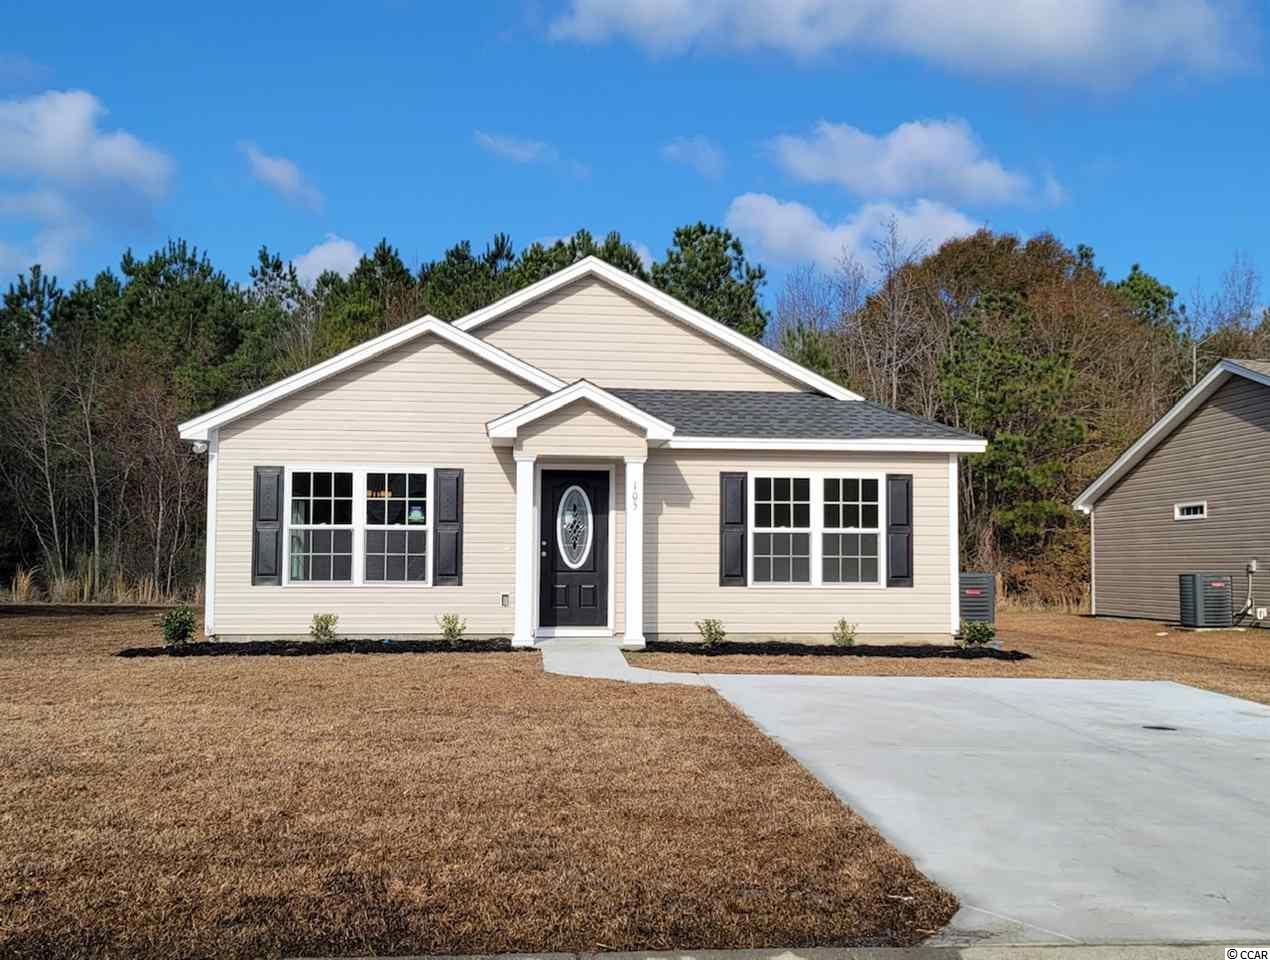 The St. John Model is a one level home with 3 BR 2 Bath, 1200+/- heated sq. ft.  with an open floor plan that features a spacious and comfortable kitchen overlooking the living room. This home feature includes but are not limited to: Low Maintenance Exterior Vinyl Siding. 30 Yr - Architectural shingles , Low E- Vinyl windows. Open Kitchen with Stainless Steel Appliances, Spacious Bedrooms,  5 ft. walk-in shower in Master Bathroom -  cultured marble vanity top in bathrooms. Pictures are of a similar plan model home and are for illustration purposes only. THIS BUILDER offers home customization and floor plan changes. Georgetown Estates is a premier community conveniently located along HWY 521,  easily access both  downtown Andrews and the Historic Georgetown, SC.  sidewalks wind throughout the community.  Huge oaks and beautiful mature trees surround this gorgeous new community. Come experience the beautiful and sweet life that the low country of South Carolina and Georgetown Estates has to offer! This builder is a equal opportunity Builder.